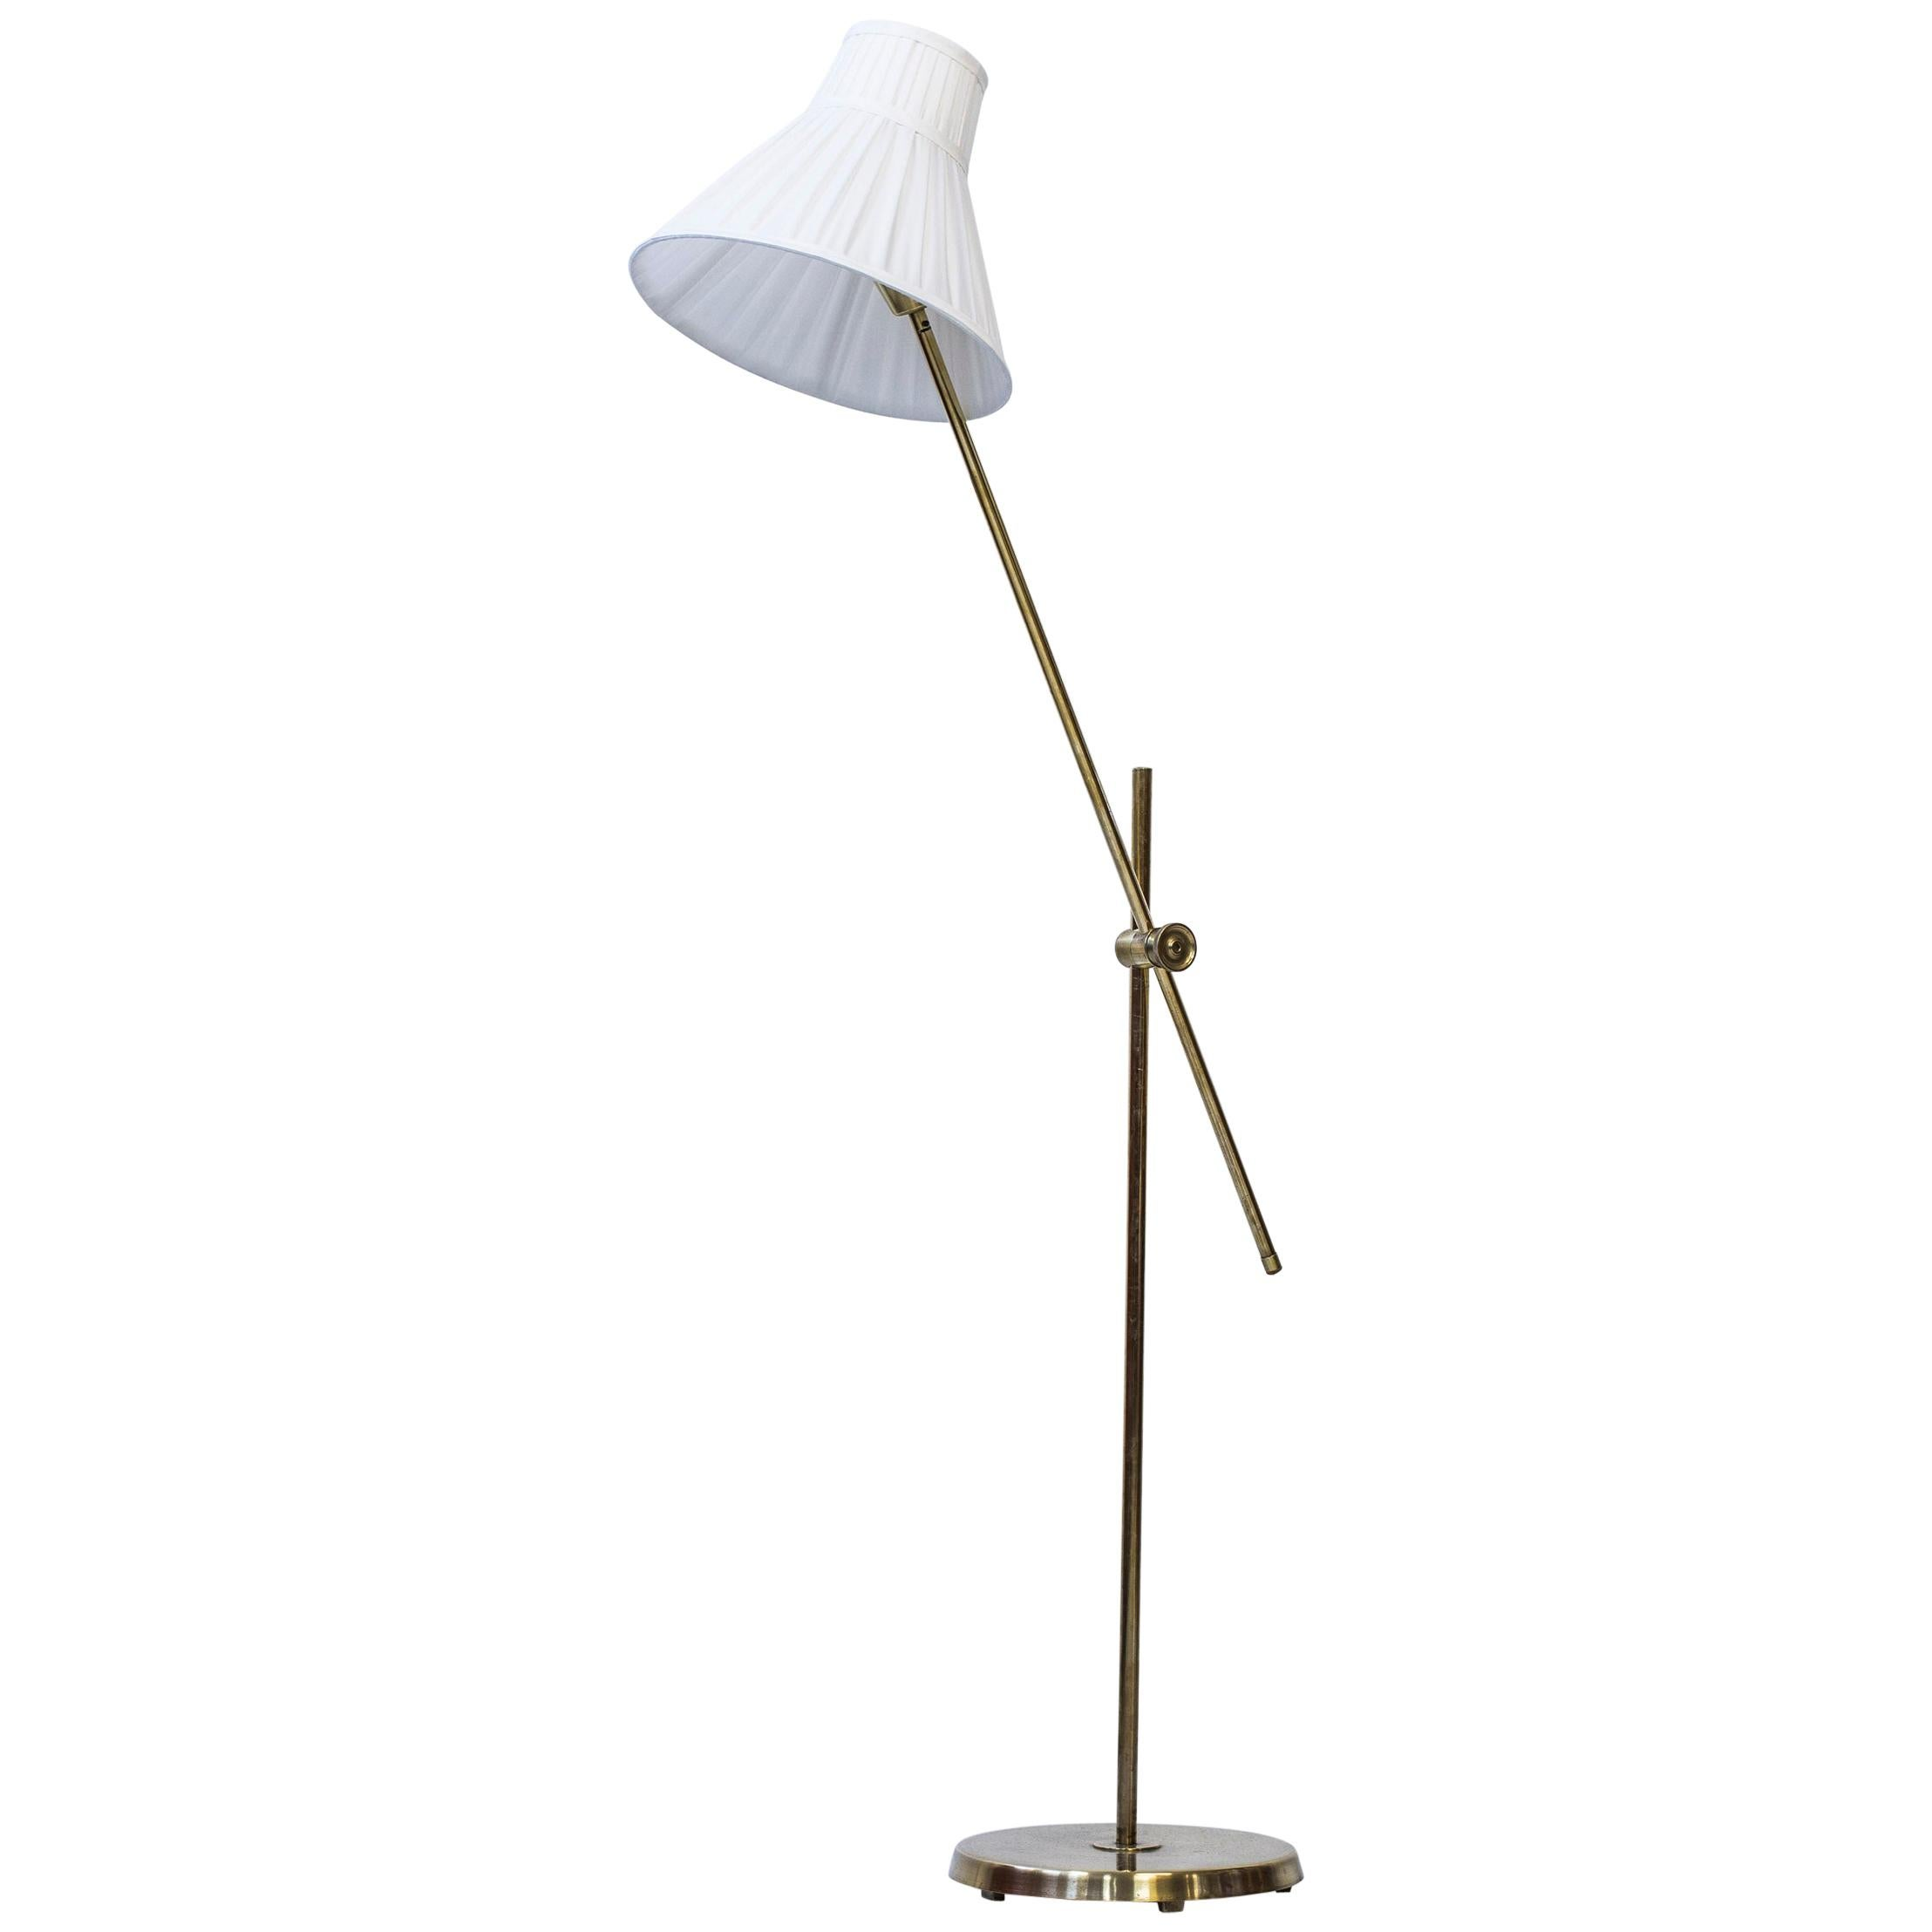 Floor Lamp in Brass and Fabric by Hans Bergström for ASEA, Sweden, 1940s-1950s